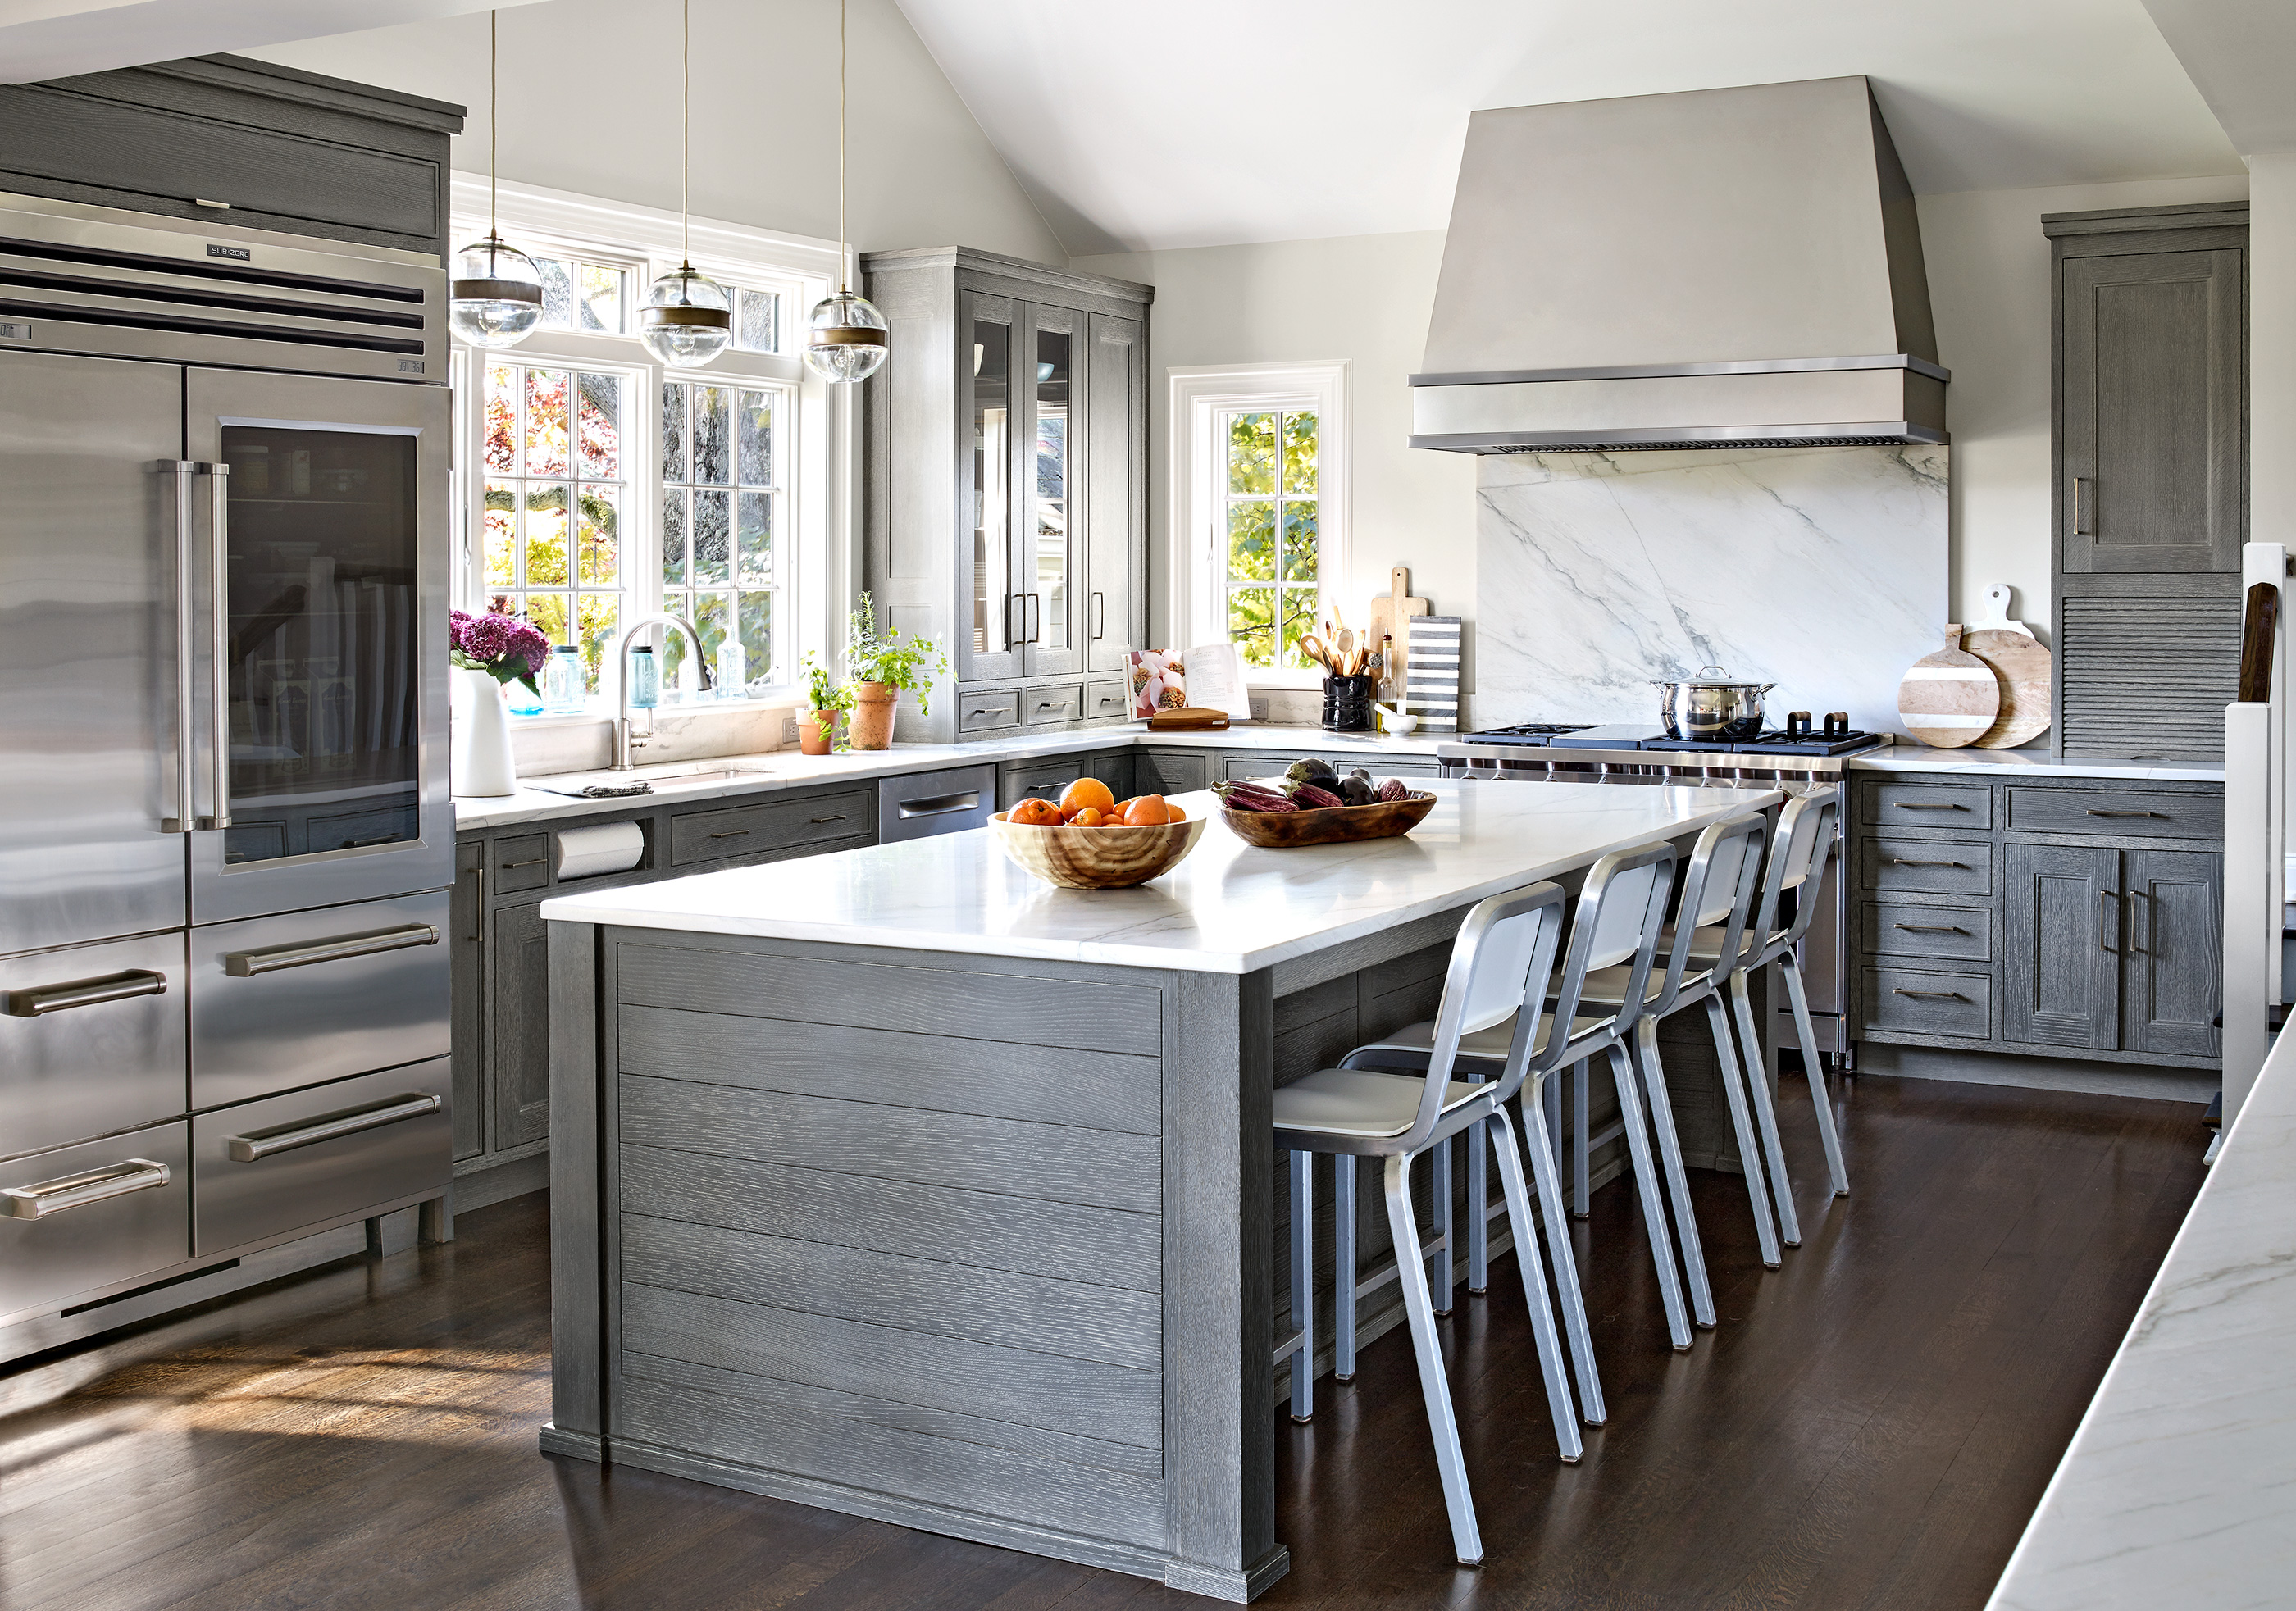 kitchen remodel in Mamaroneck, NY, after overview